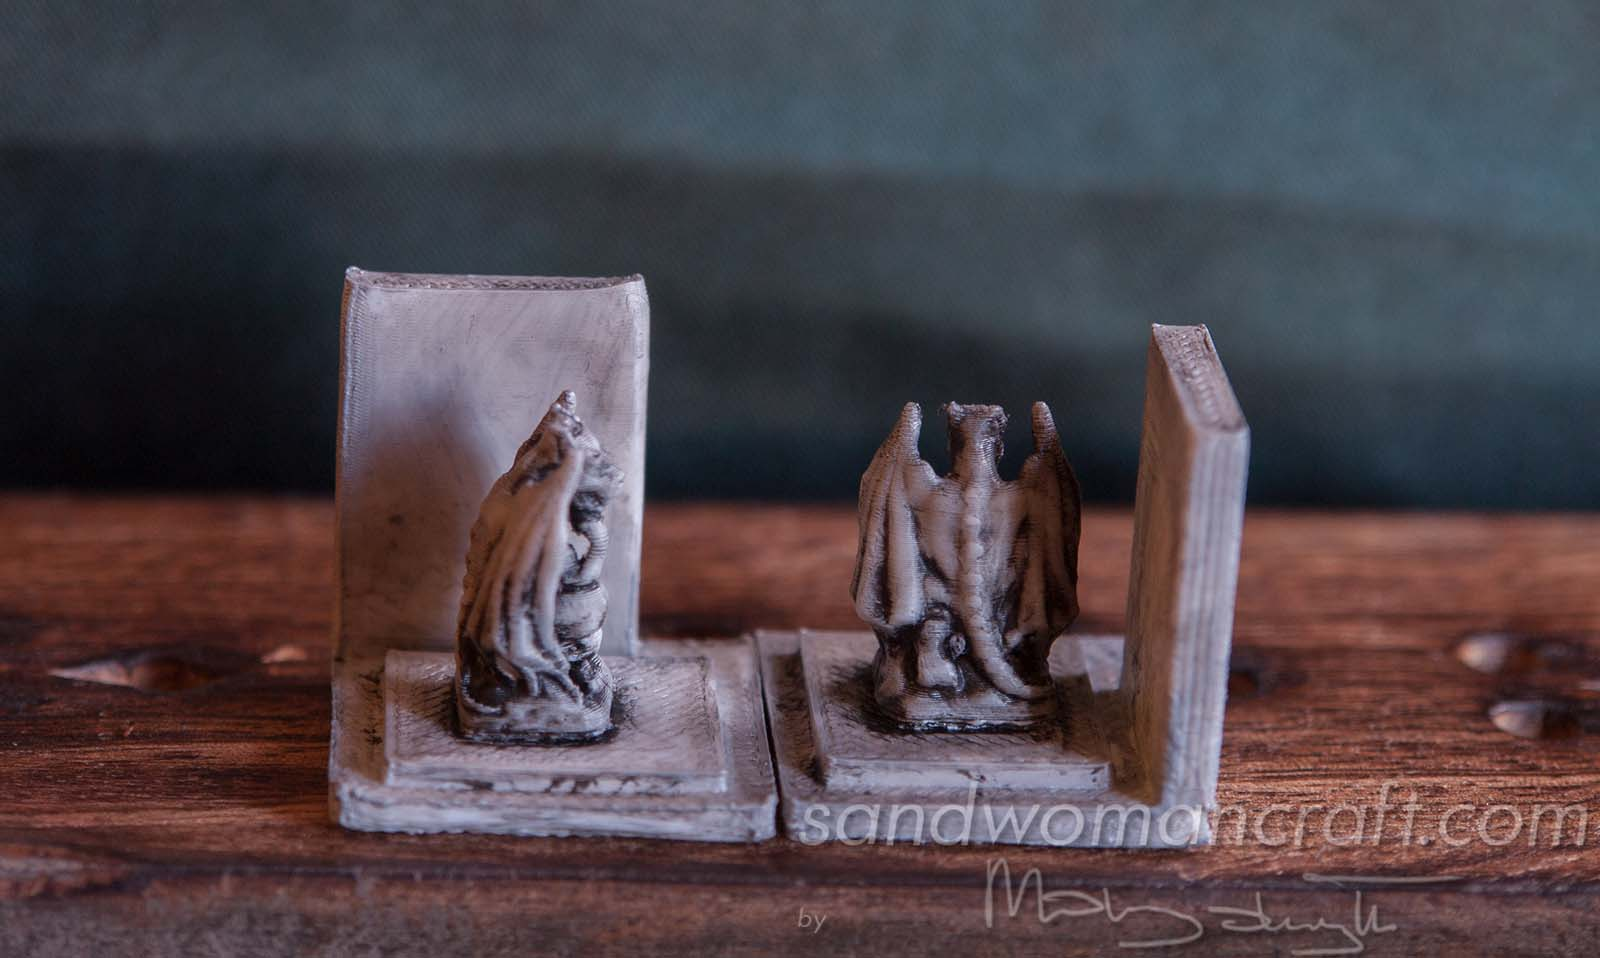 Miniature bookends with Gargoyles in 1:12 scale, 1 inch scale